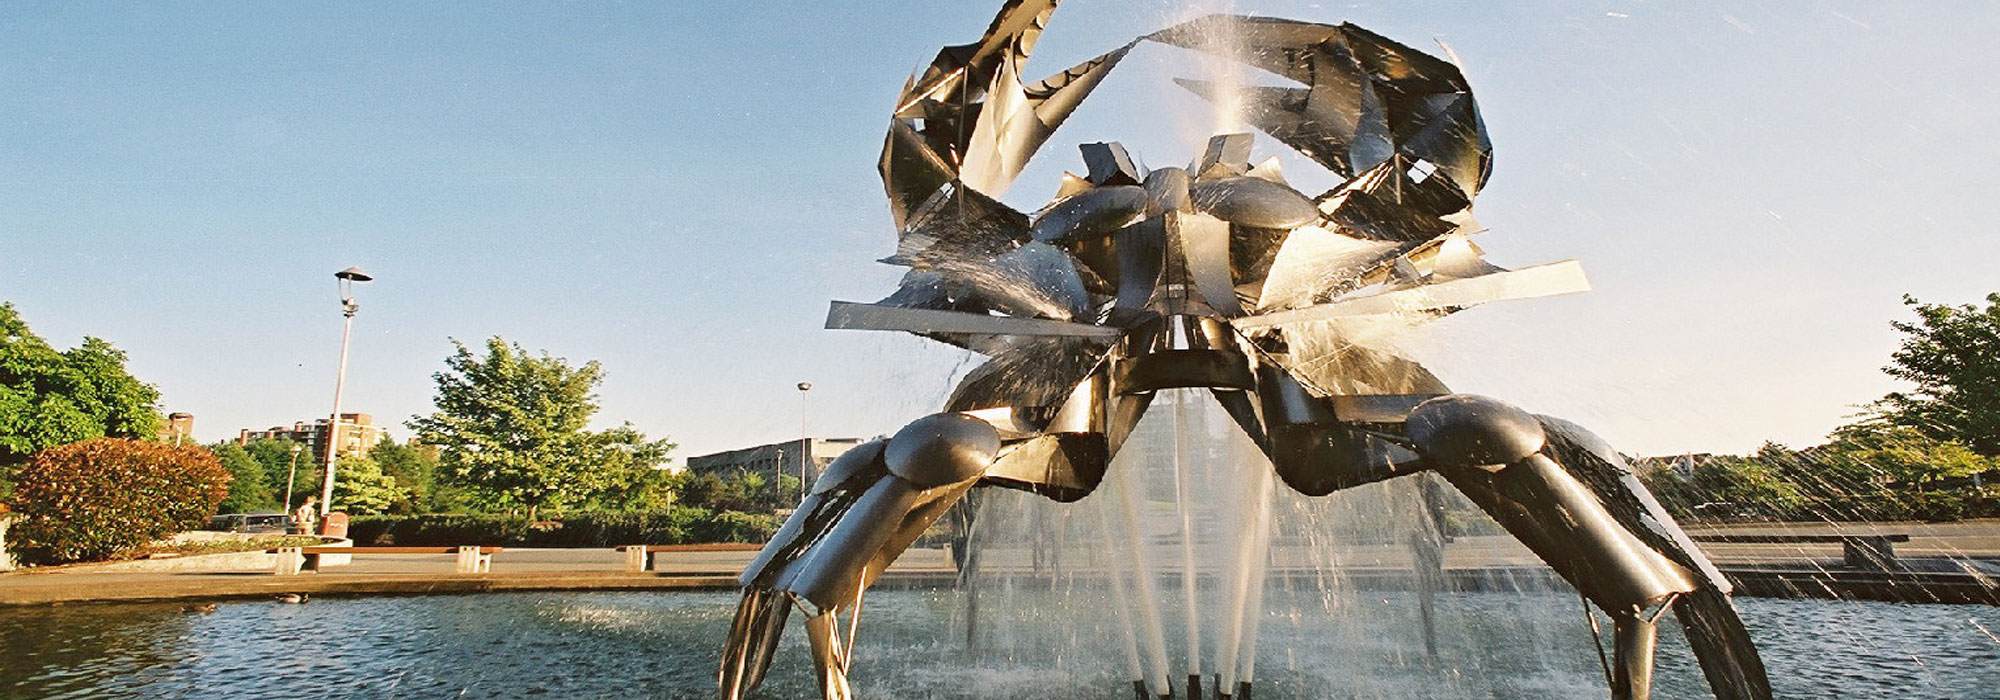 Photographed by thousands, this Stainless Steel Crab can be found at the Vancouver Planetarium.